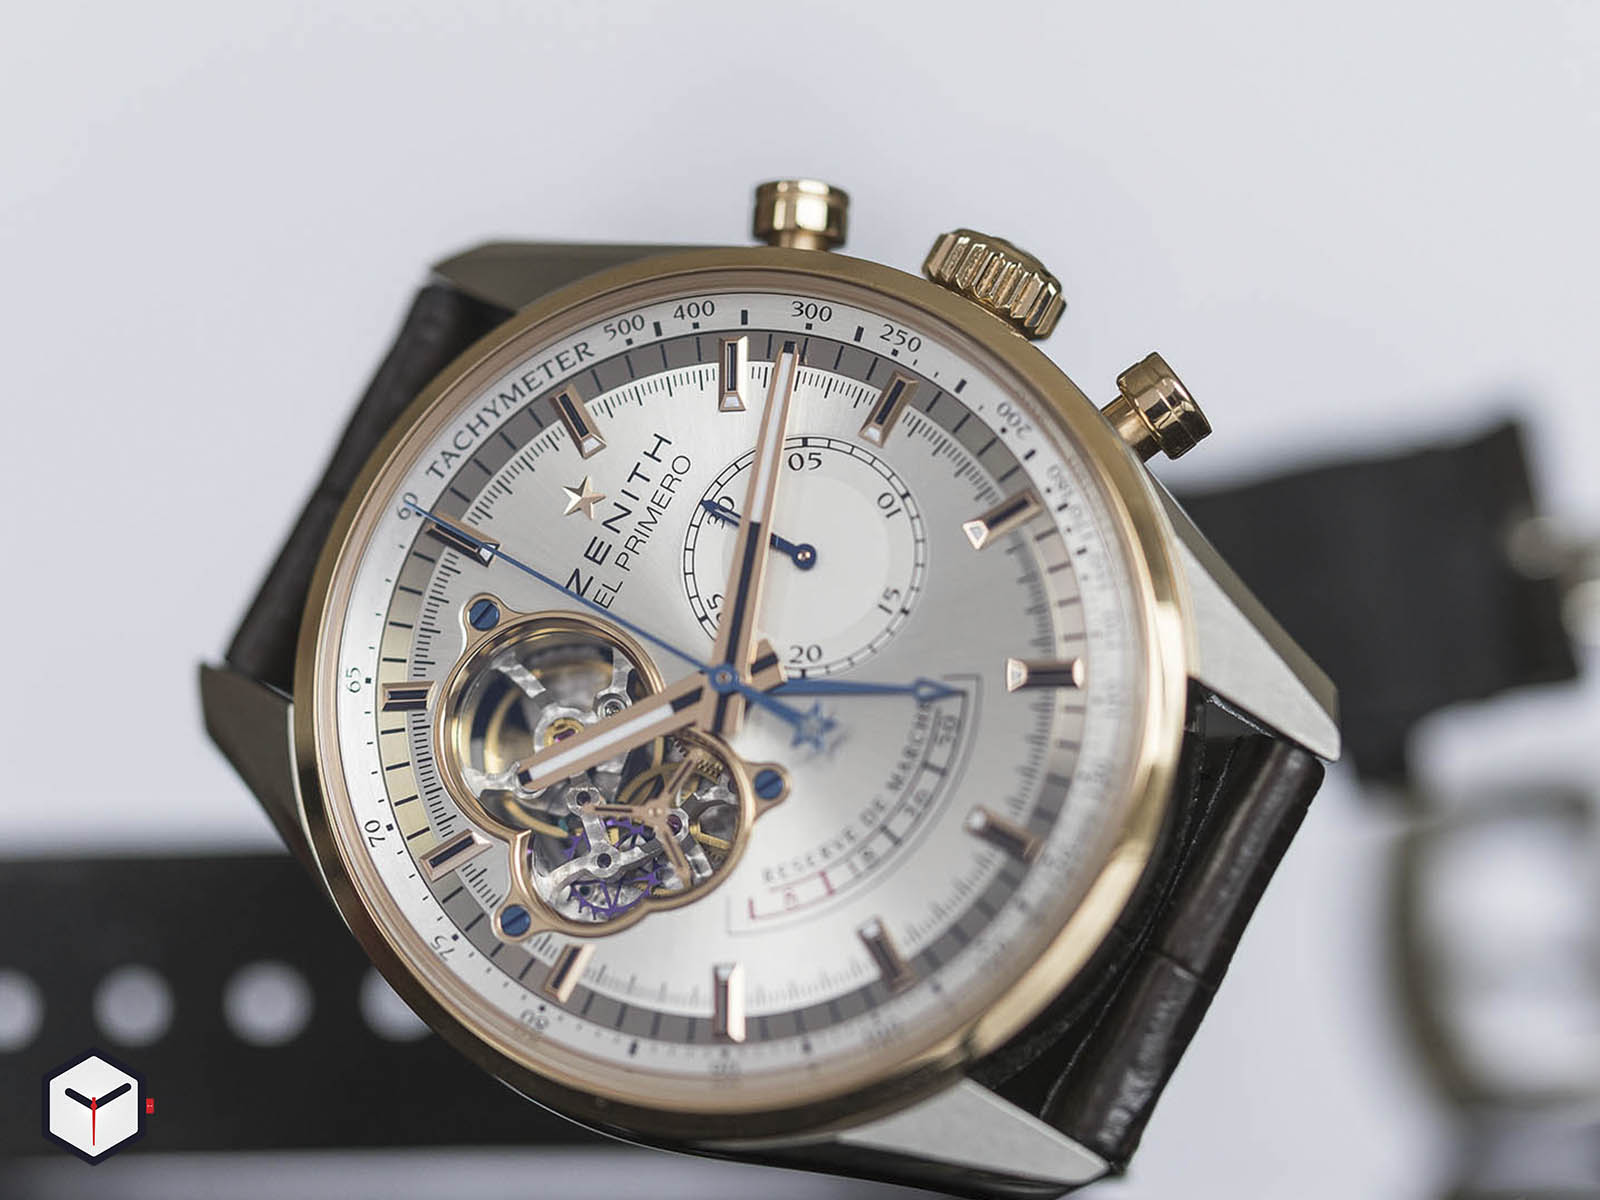 two-tone-watches-51-2080-4021-01-c494-zenith-el-primero-chronomaster-power-reserve.jpg